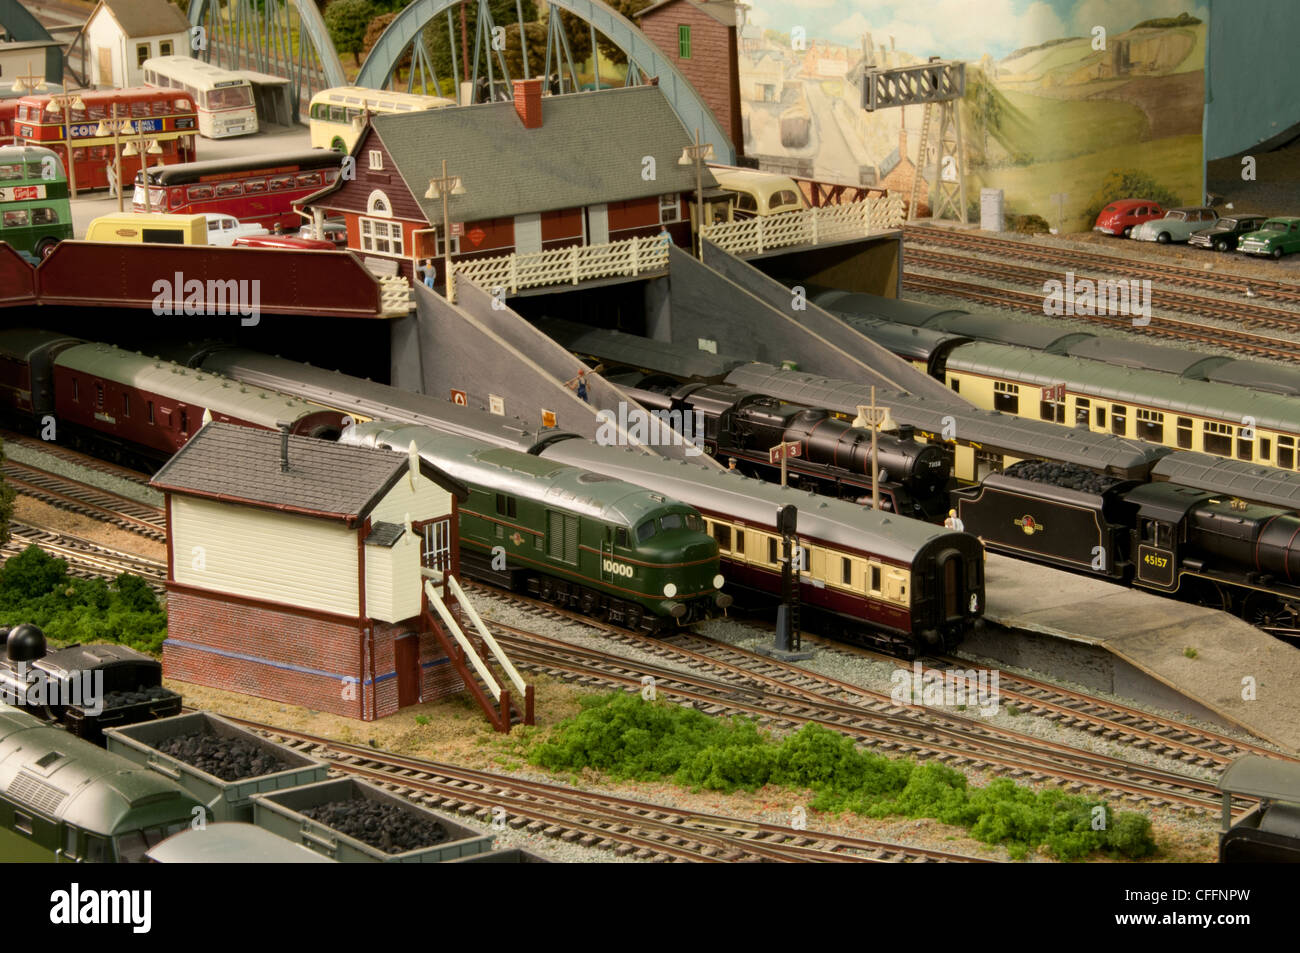 Model Railway Layout showing various trains and models Stock Photo